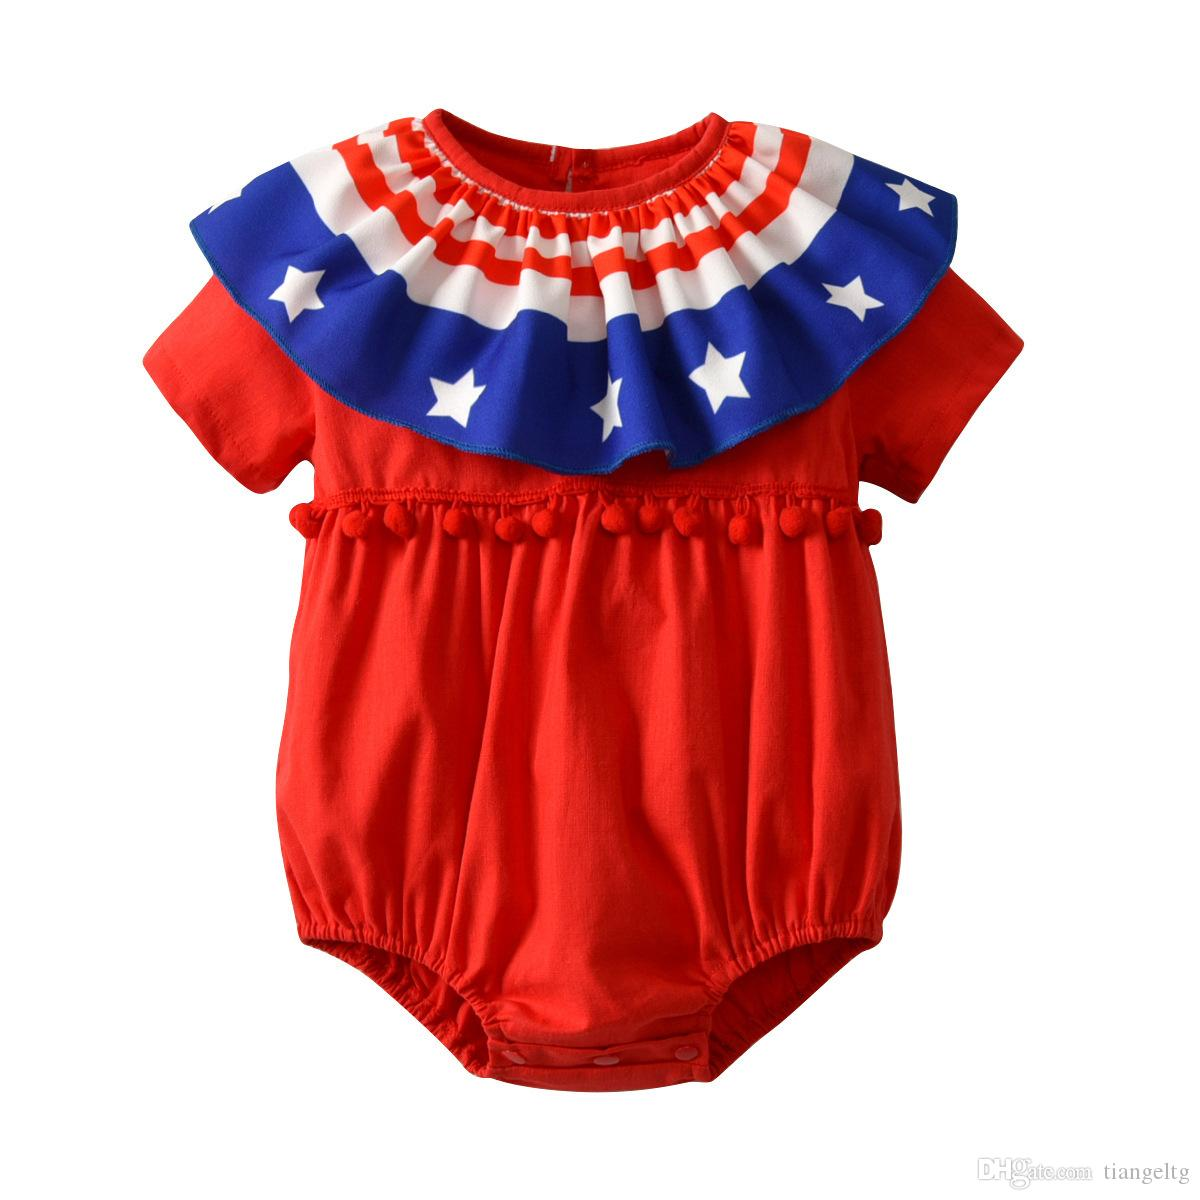 712732c0462a 2019 Baby Girls Short Romper Striped Stars American Independence Day  Jumpsuit Overalls Toddler Infant 4th Of July Summer Outfits Drop Shipping  From ...